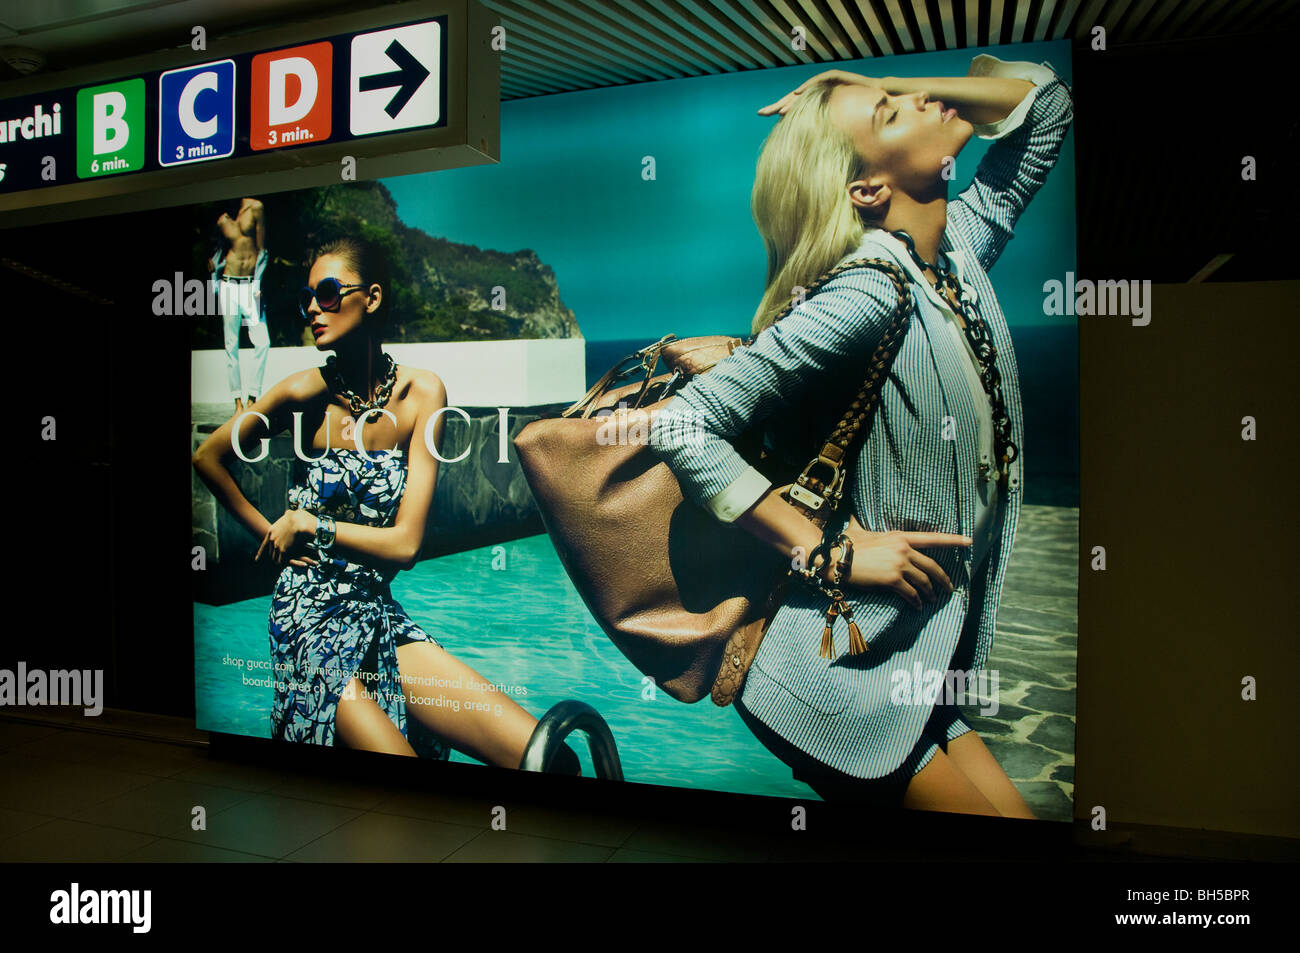 Gucci fashion man woman young classy Airport Rome - Stock Image